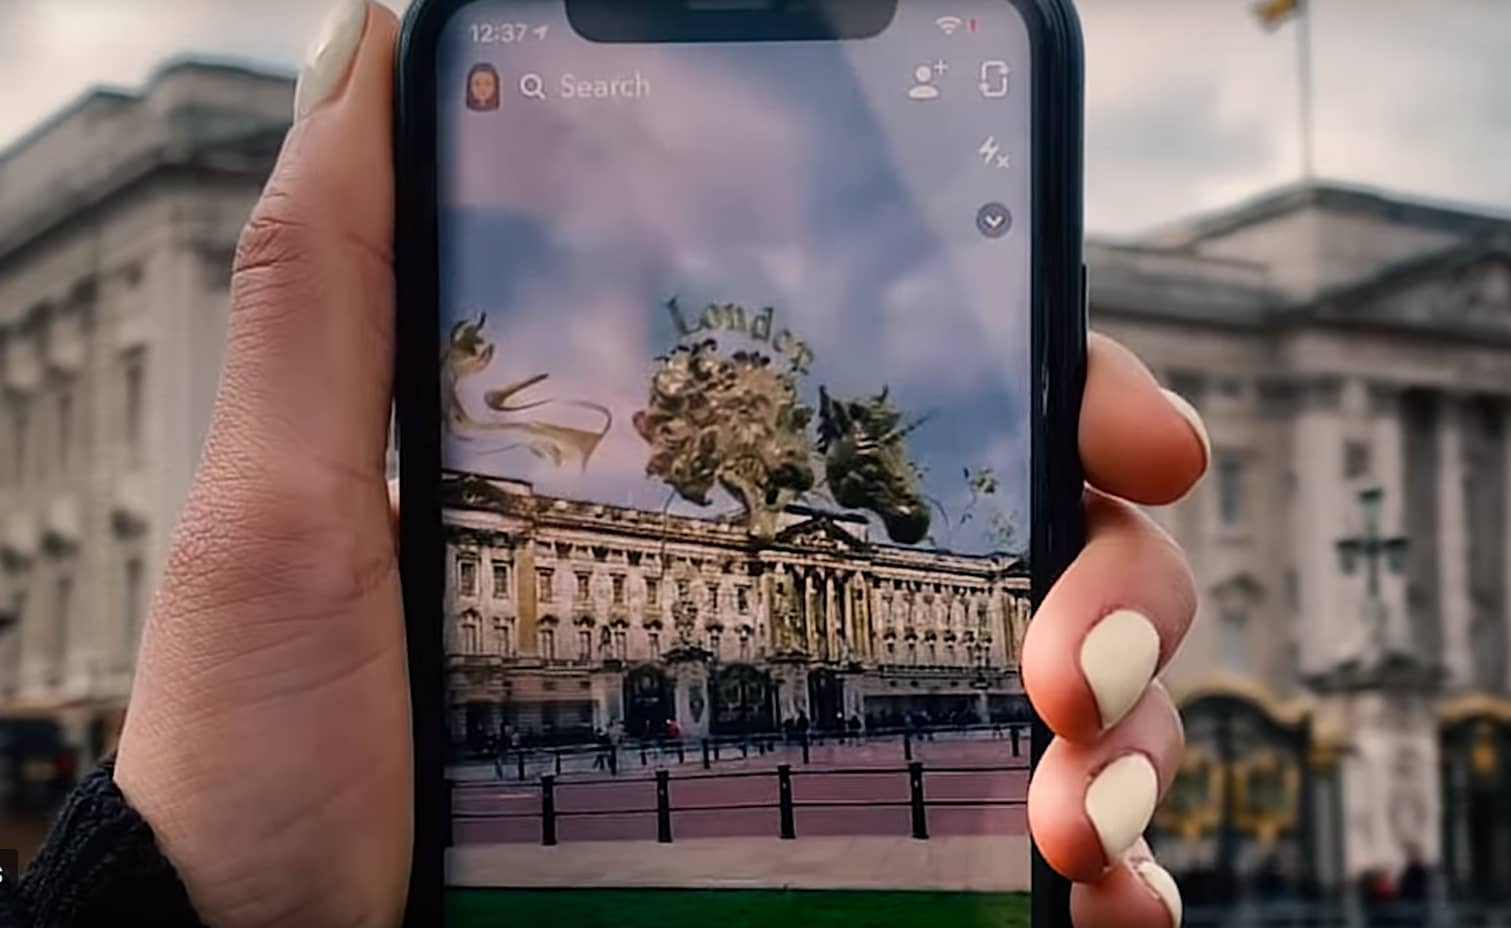 Snap and Verizon partner on 5G and new digital ads that will be overlaid on top of the real world